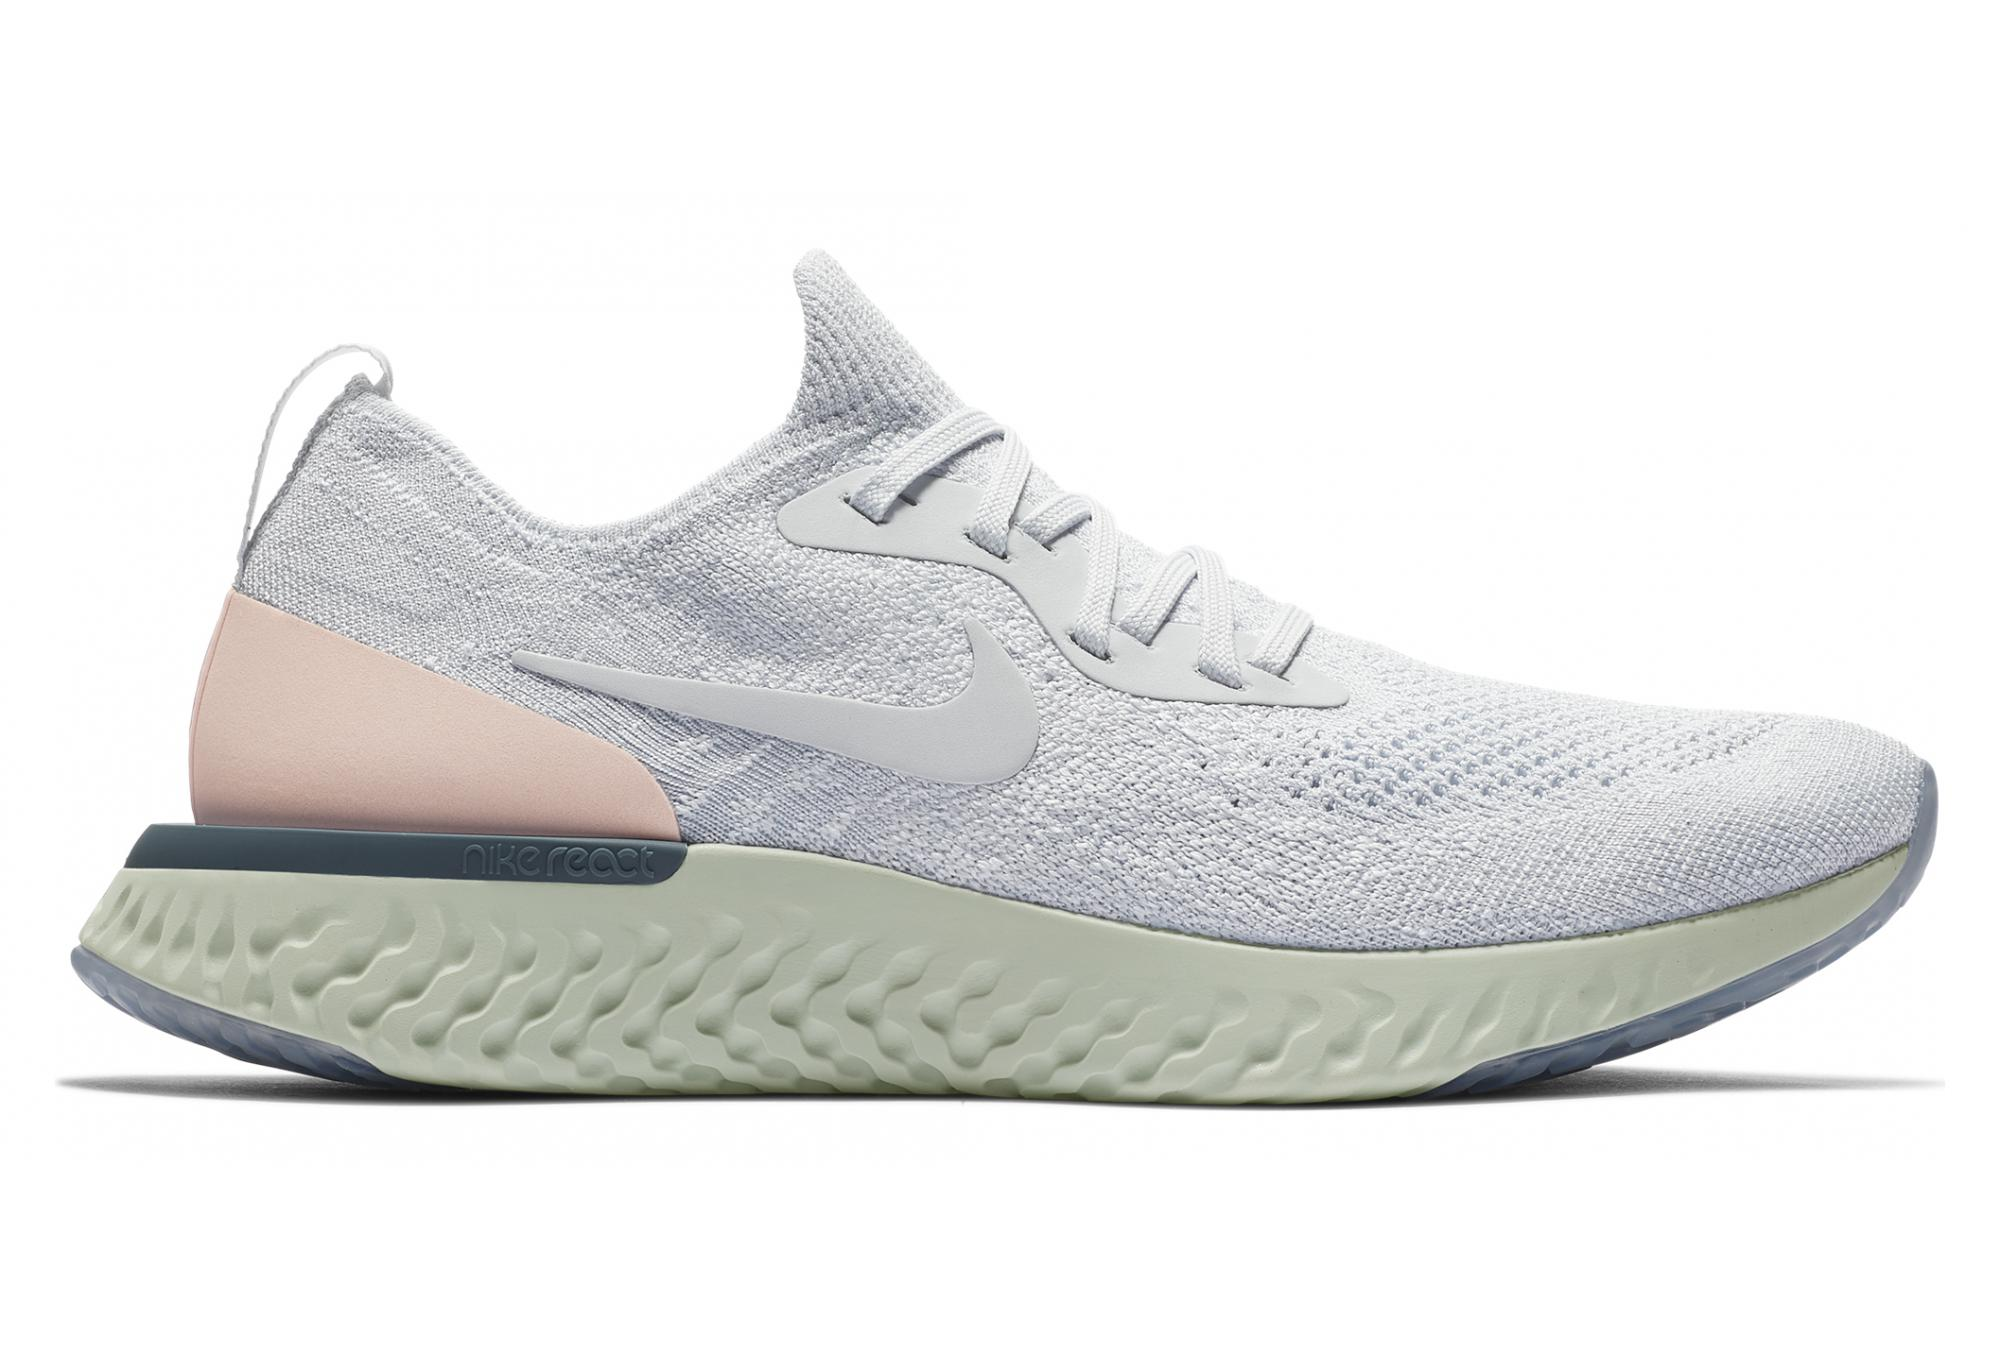 00d63f9f80123 Nike Epic React Flyknit Women s Shoes White